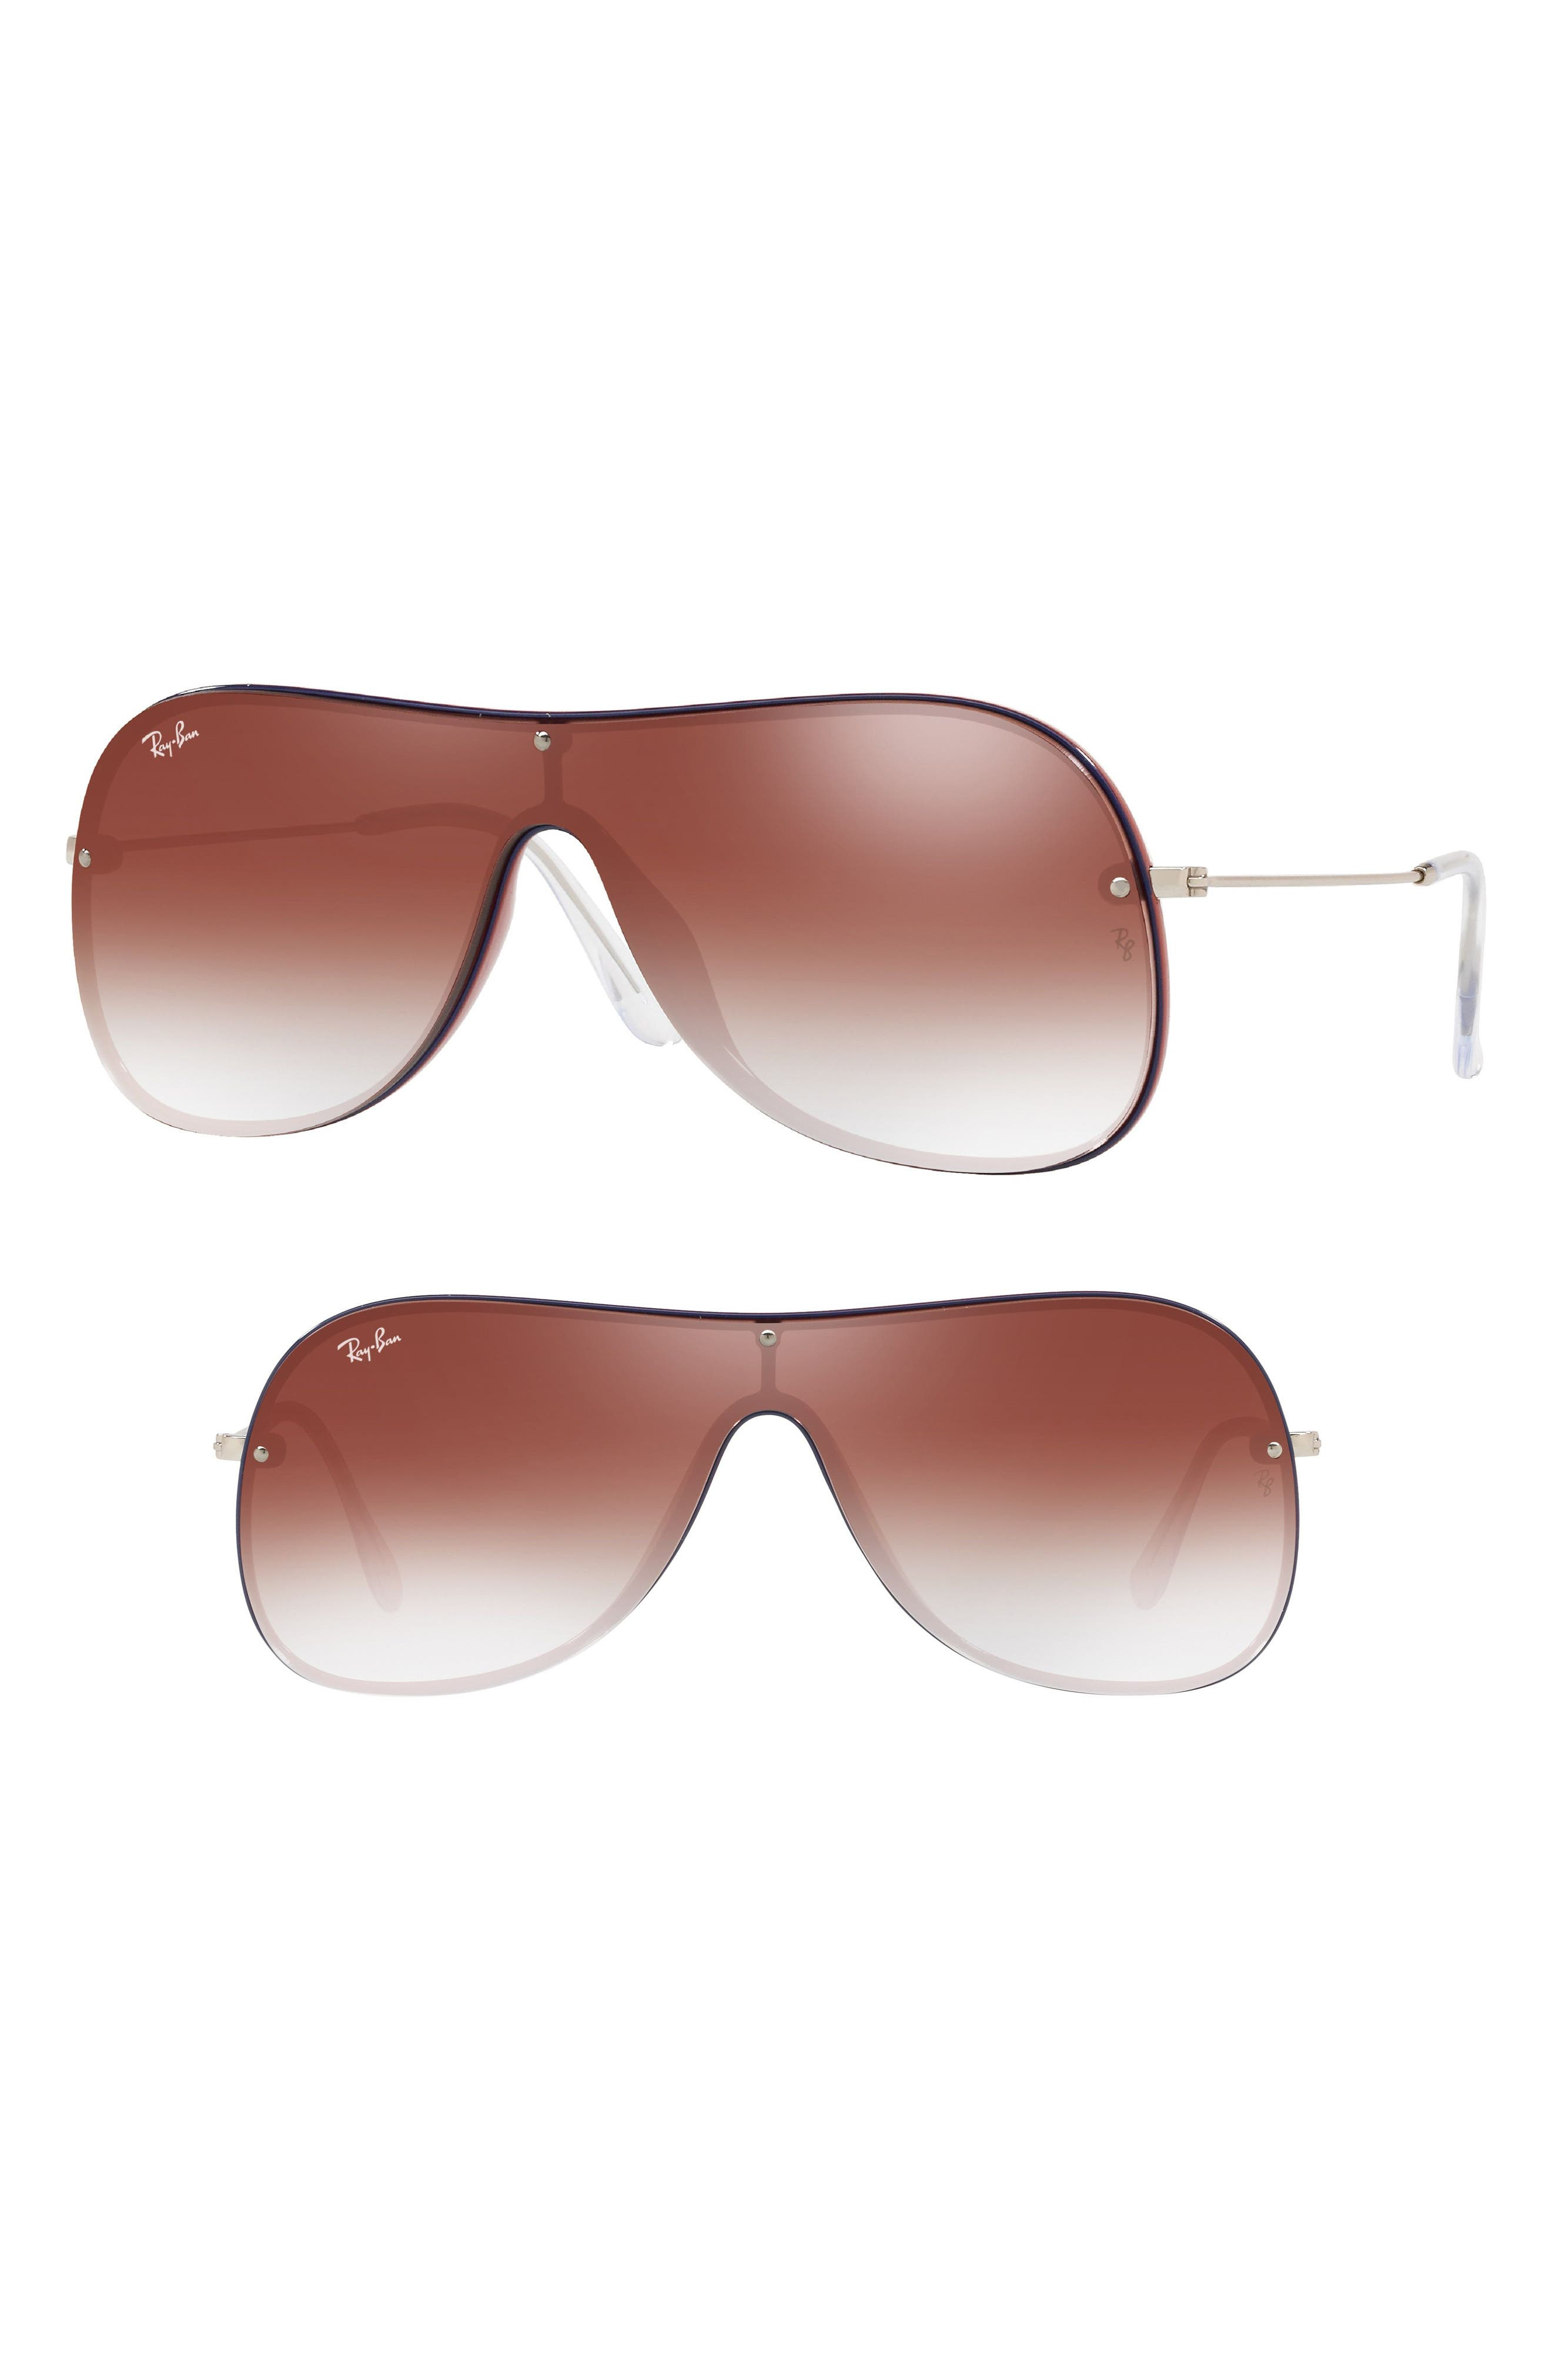 Highstreet 138mm Shield Sunglasses,                             Main thumbnail 1, color,                             Red Gradient Mirror